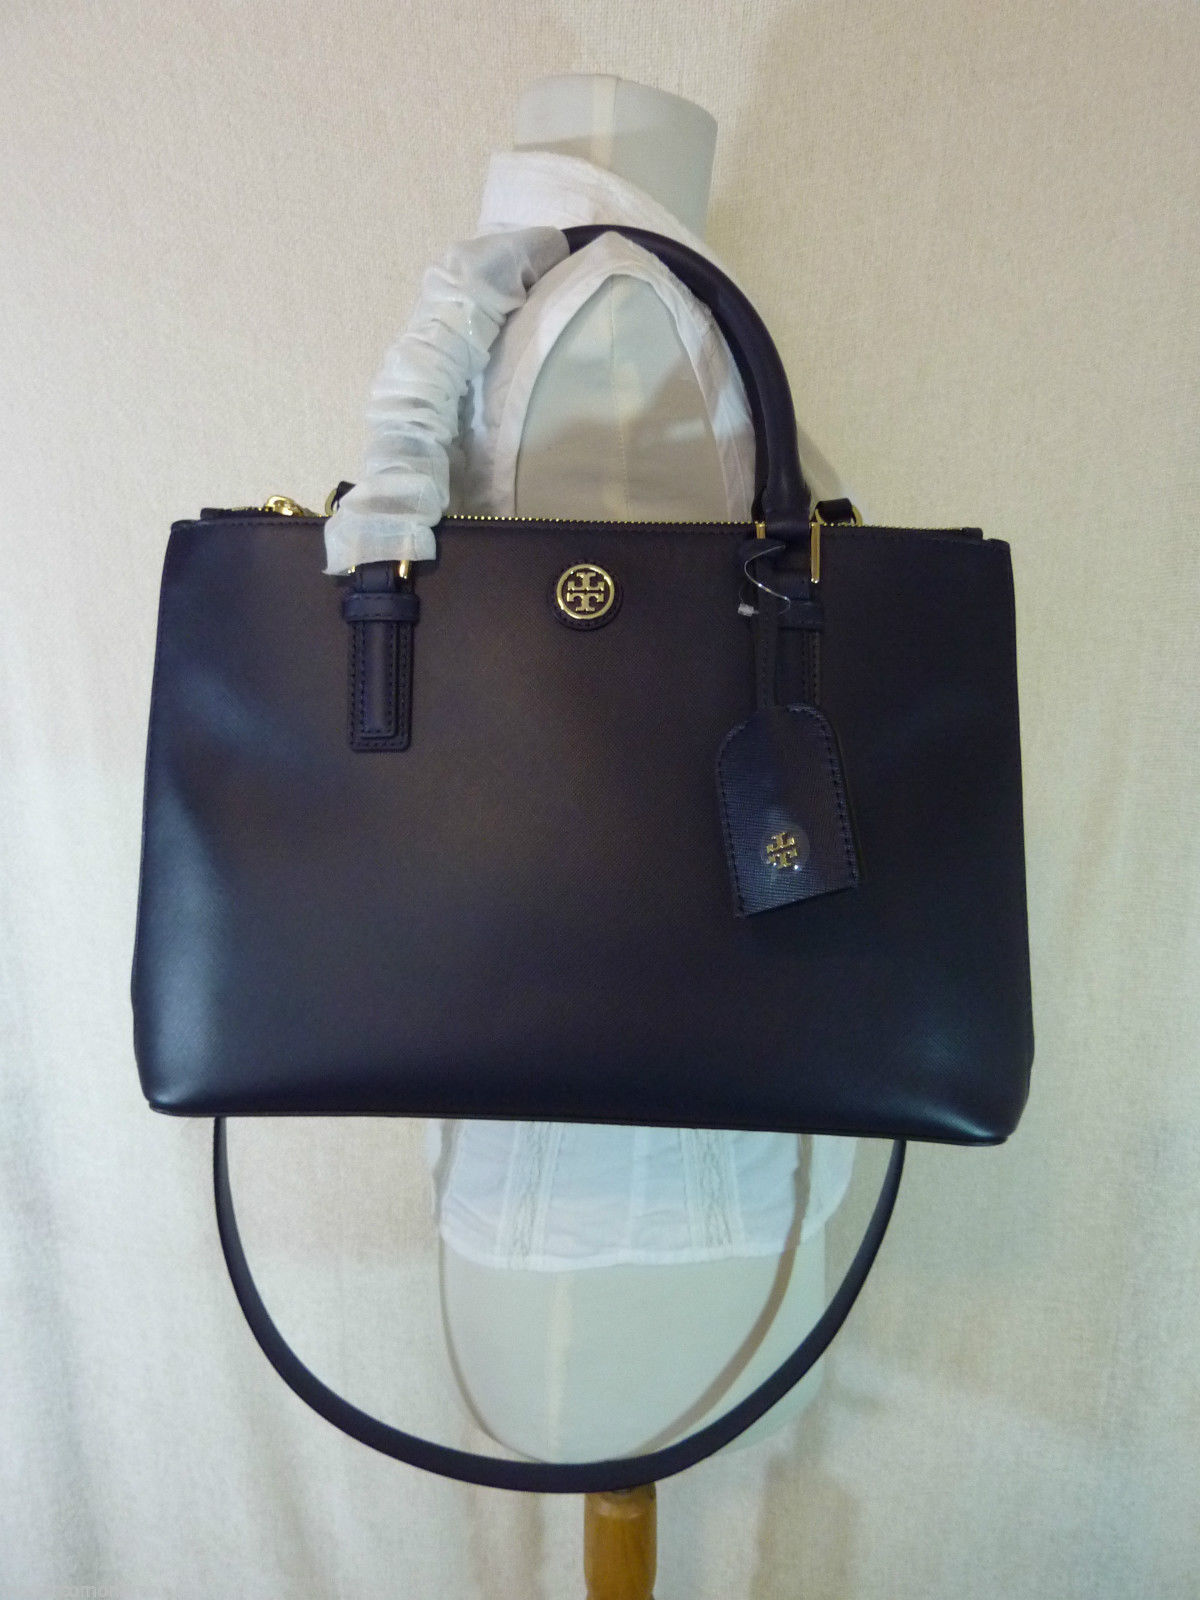 Tory Burch Navy Blue Saffiano Leather Robinson Mini Double-Zip Tote $495